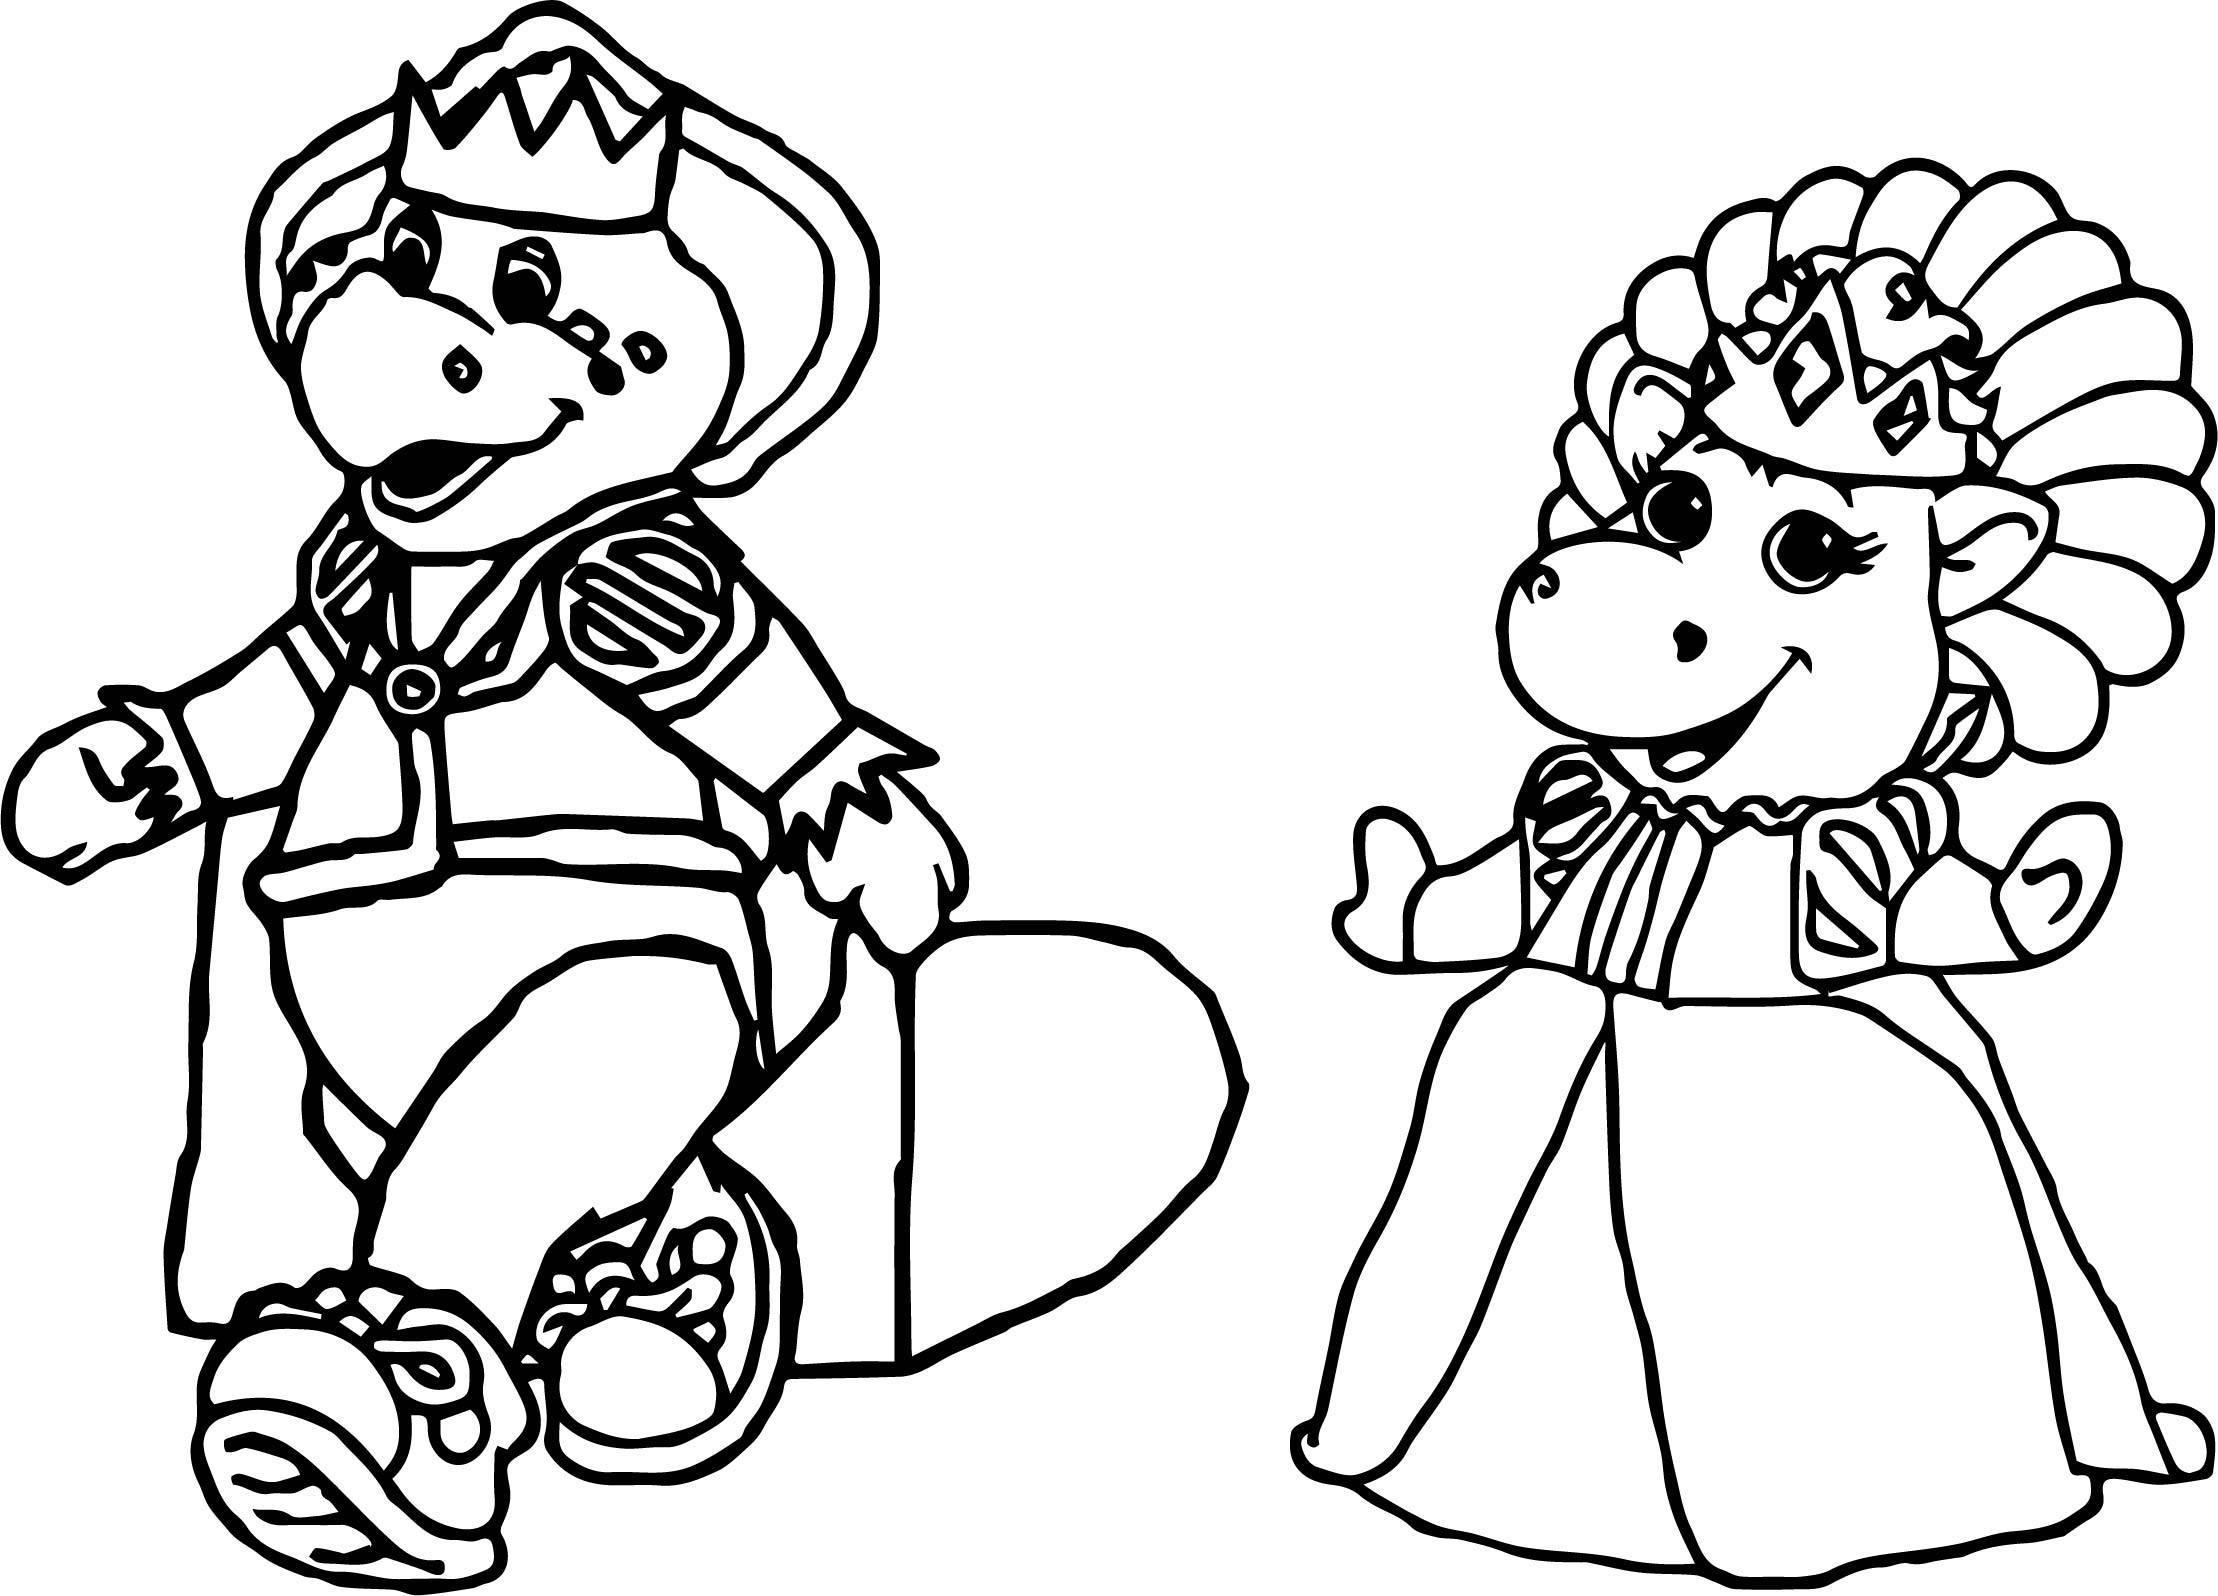 Baby Bop Royalty Coloring Page